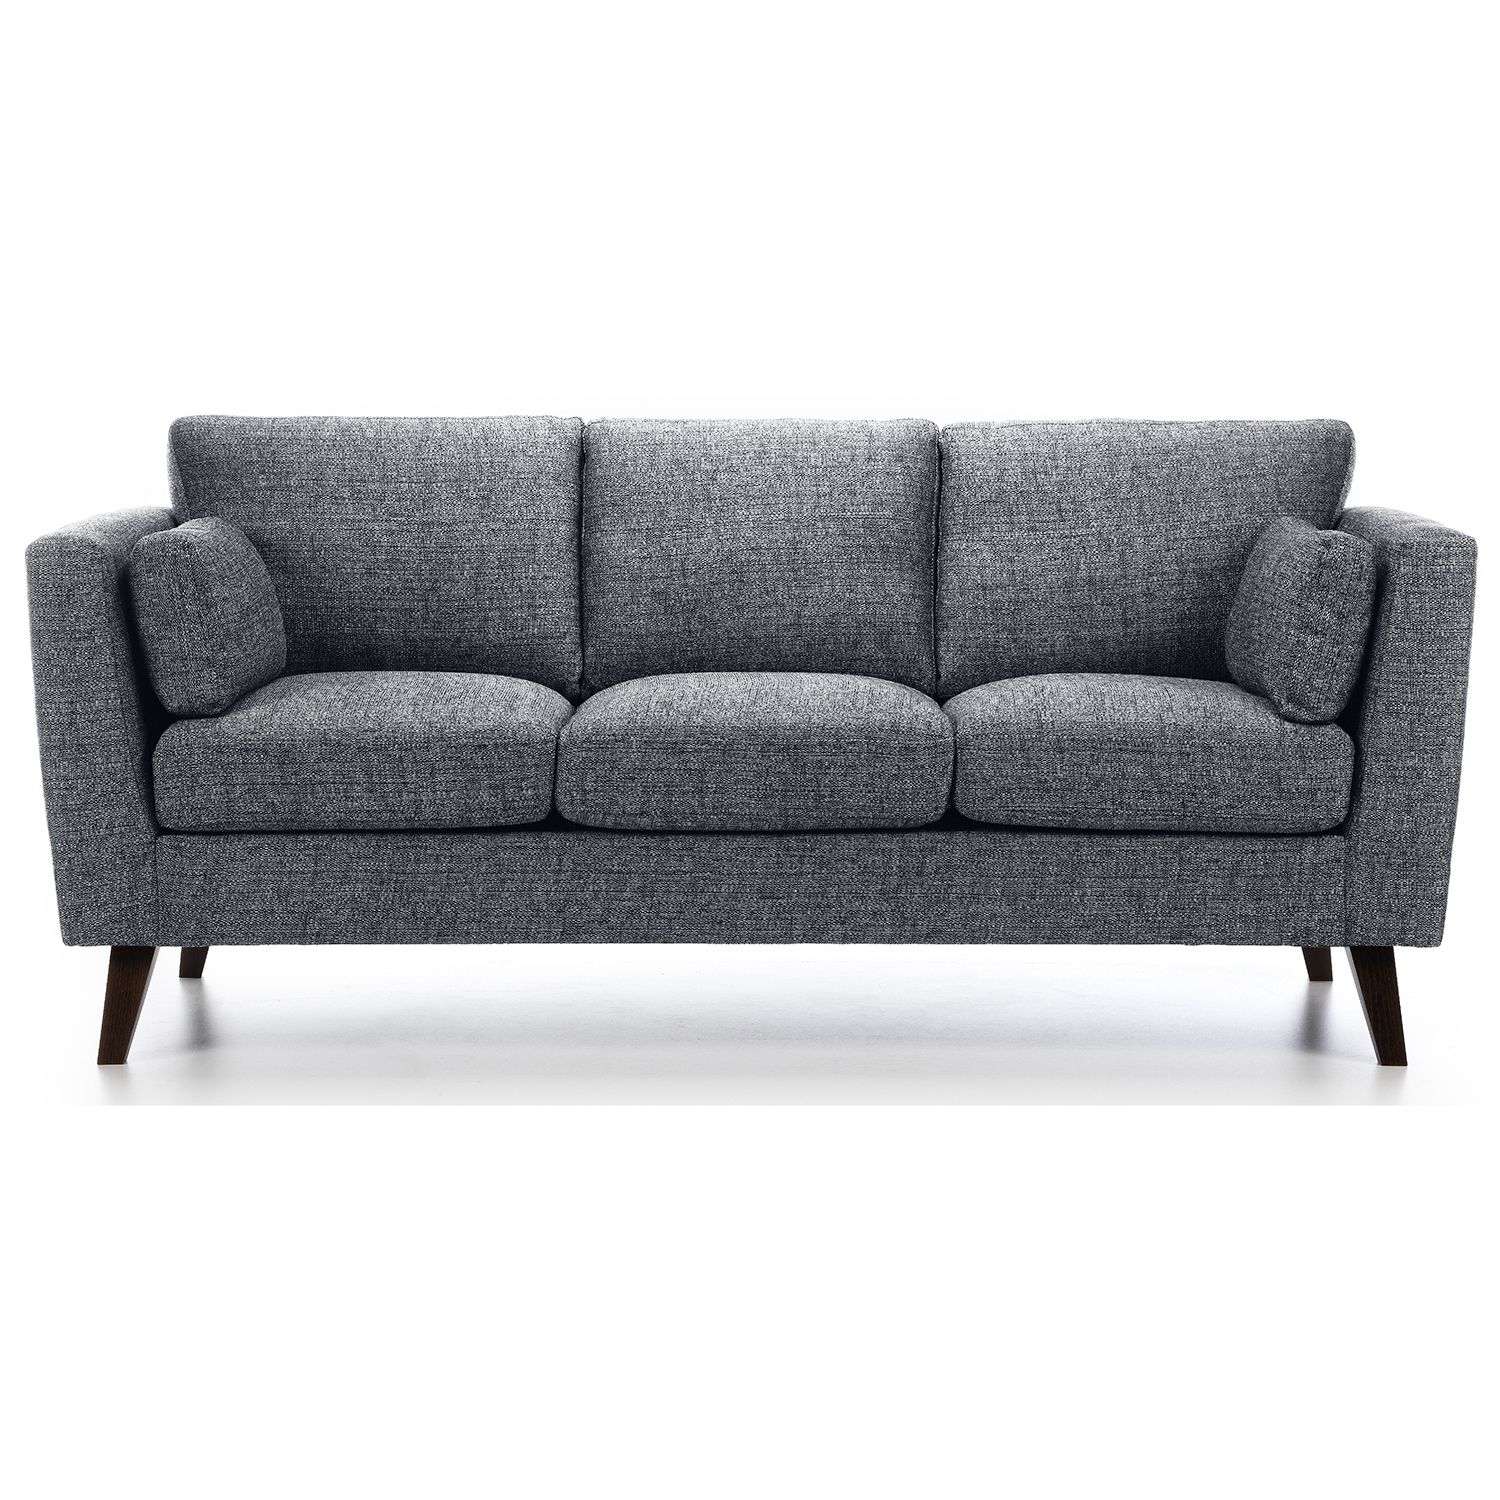 Sam Fabric 3 Seater Sofa Next Day Delivery Sam Fabric 3 Seater Sofa From Worldstores Everything For The Home Seater Sofa 3 Seater Sofa Best Leather Sofa